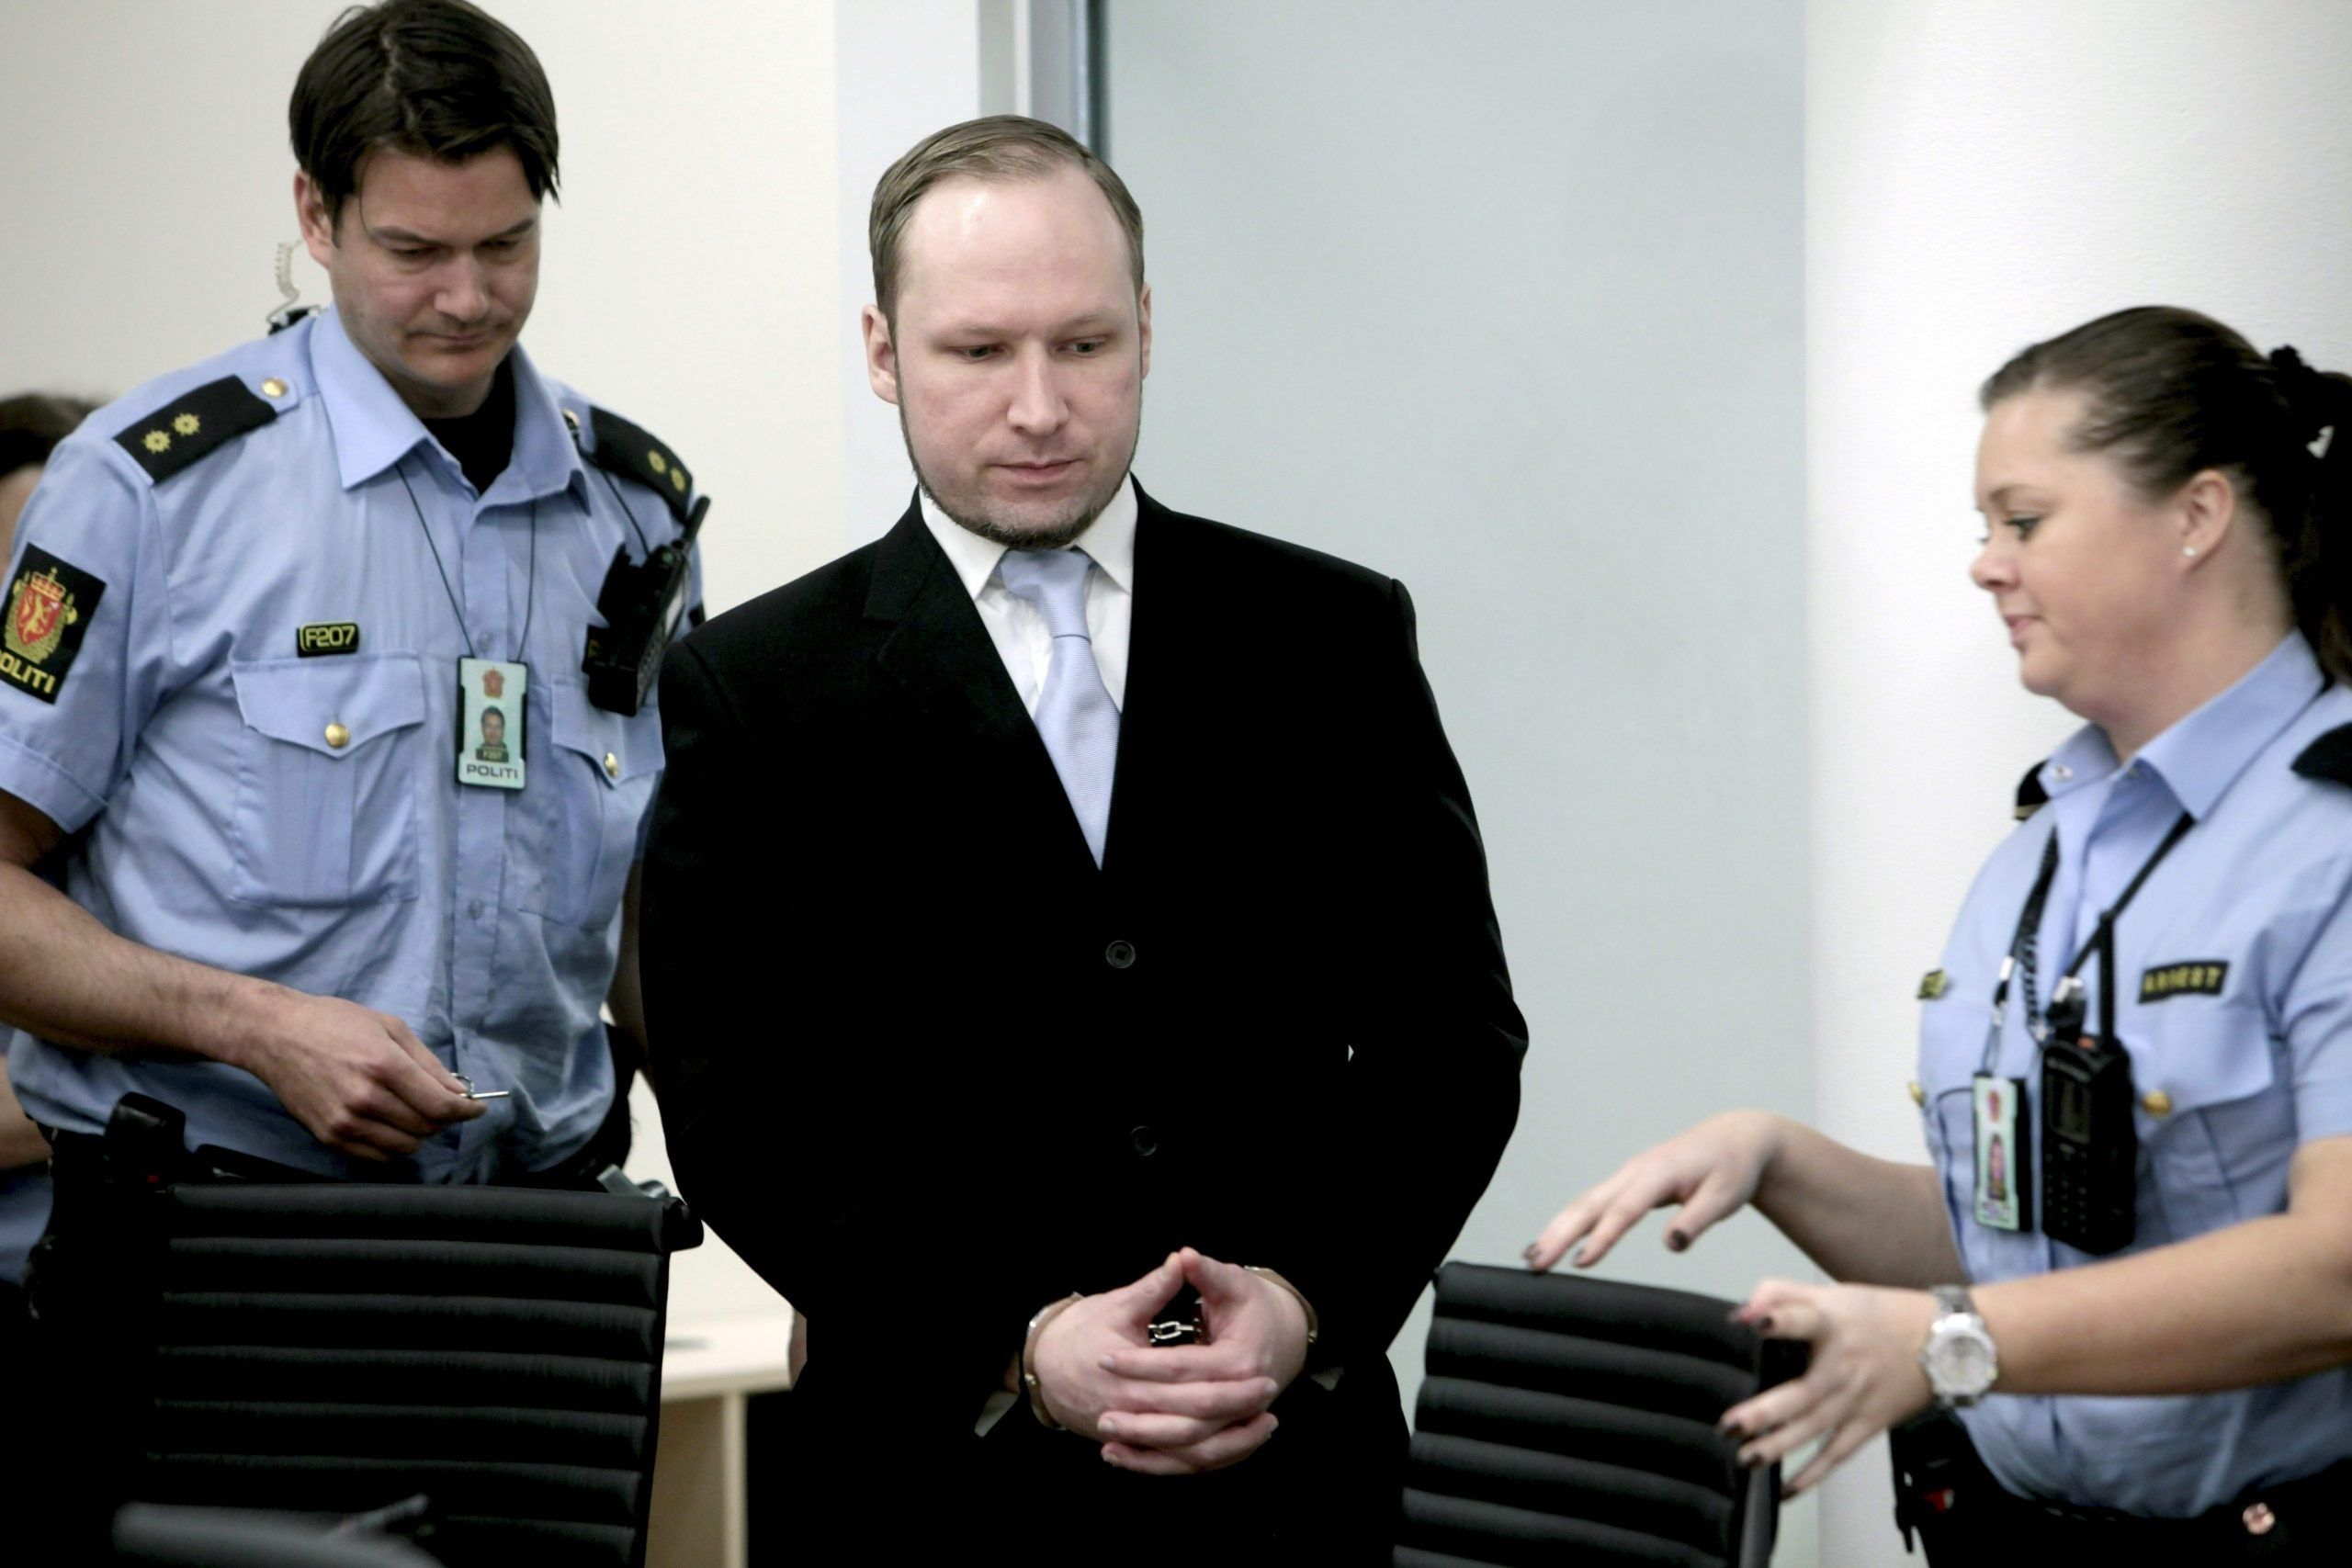 The grotesque manipulations of Anders Breivik